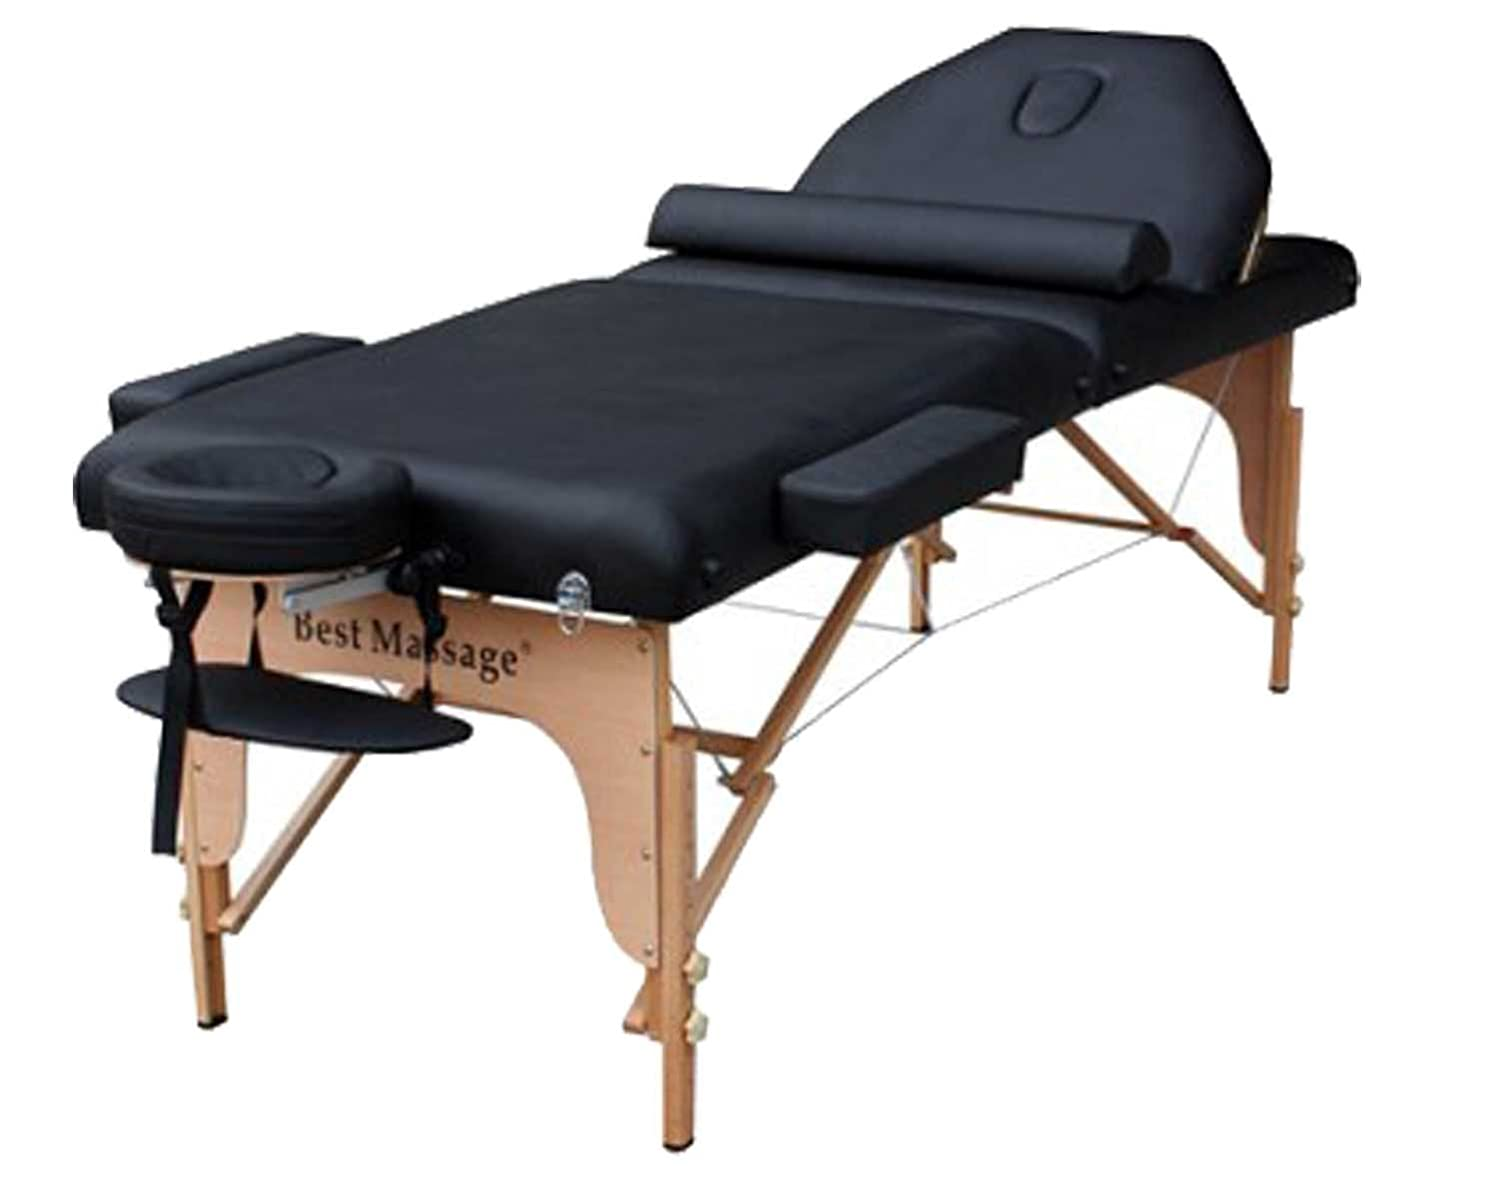 611vud3n9el sl1500 jpg - How much is a massage table ...